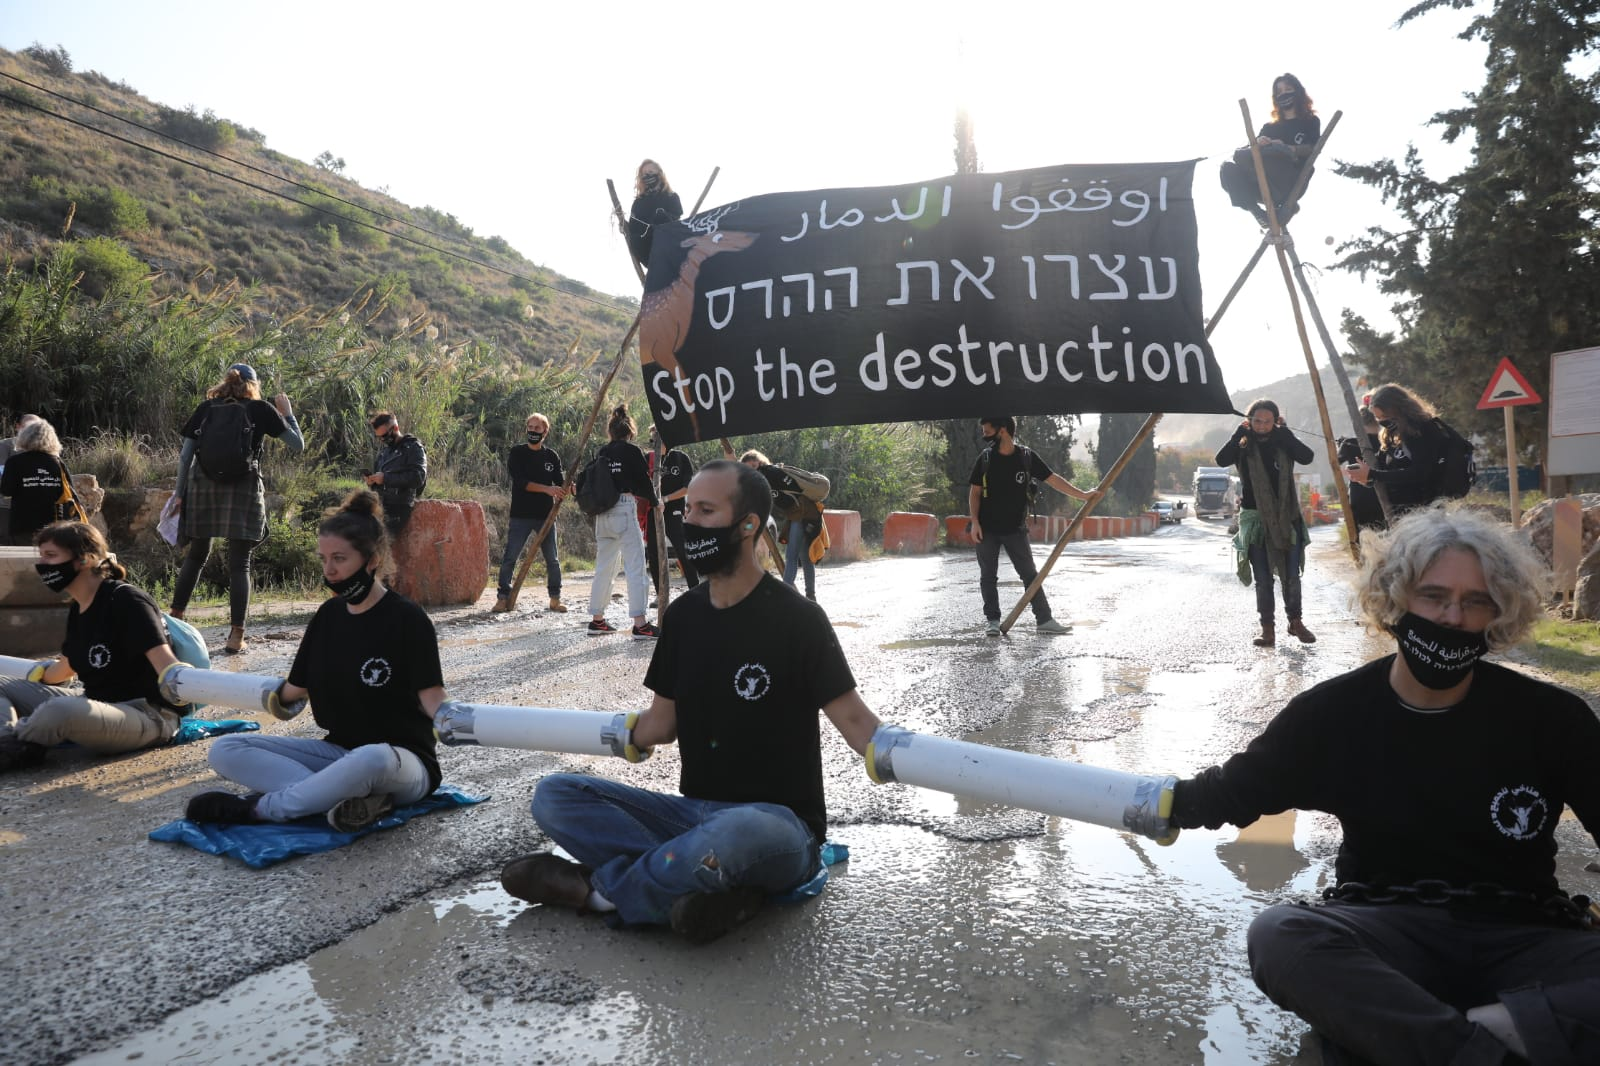 Israeli climate and human rights activists chain themselves to the entrance of HeidelbergCement quarry in the occupied West Bank to protest a government plan to expand the quarry and build an industrial zone nearby, November 22, 2020. (Oren Ziv)